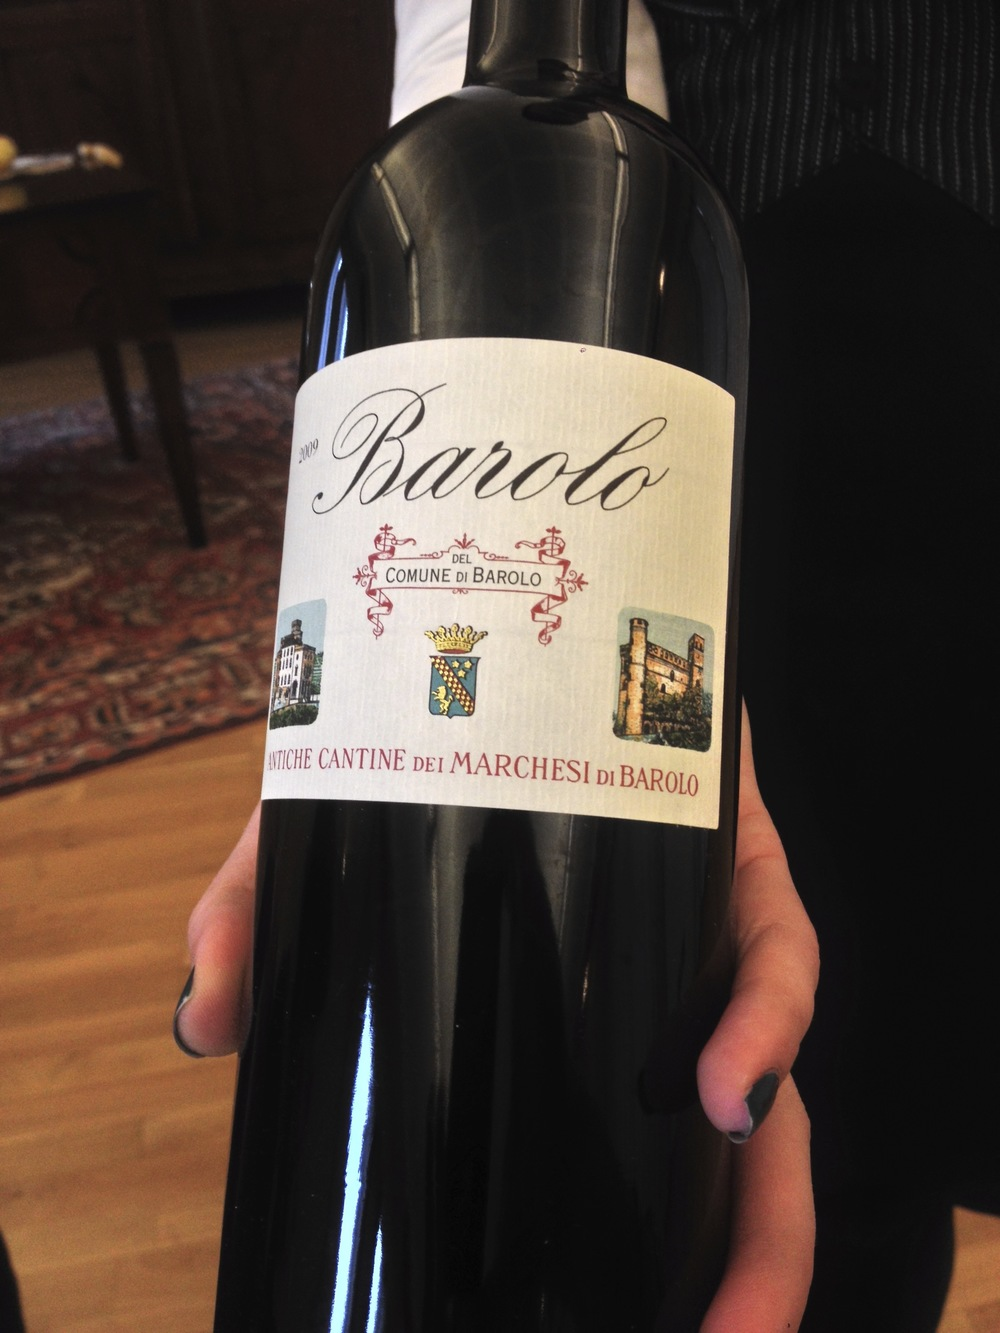 Barolo bottle